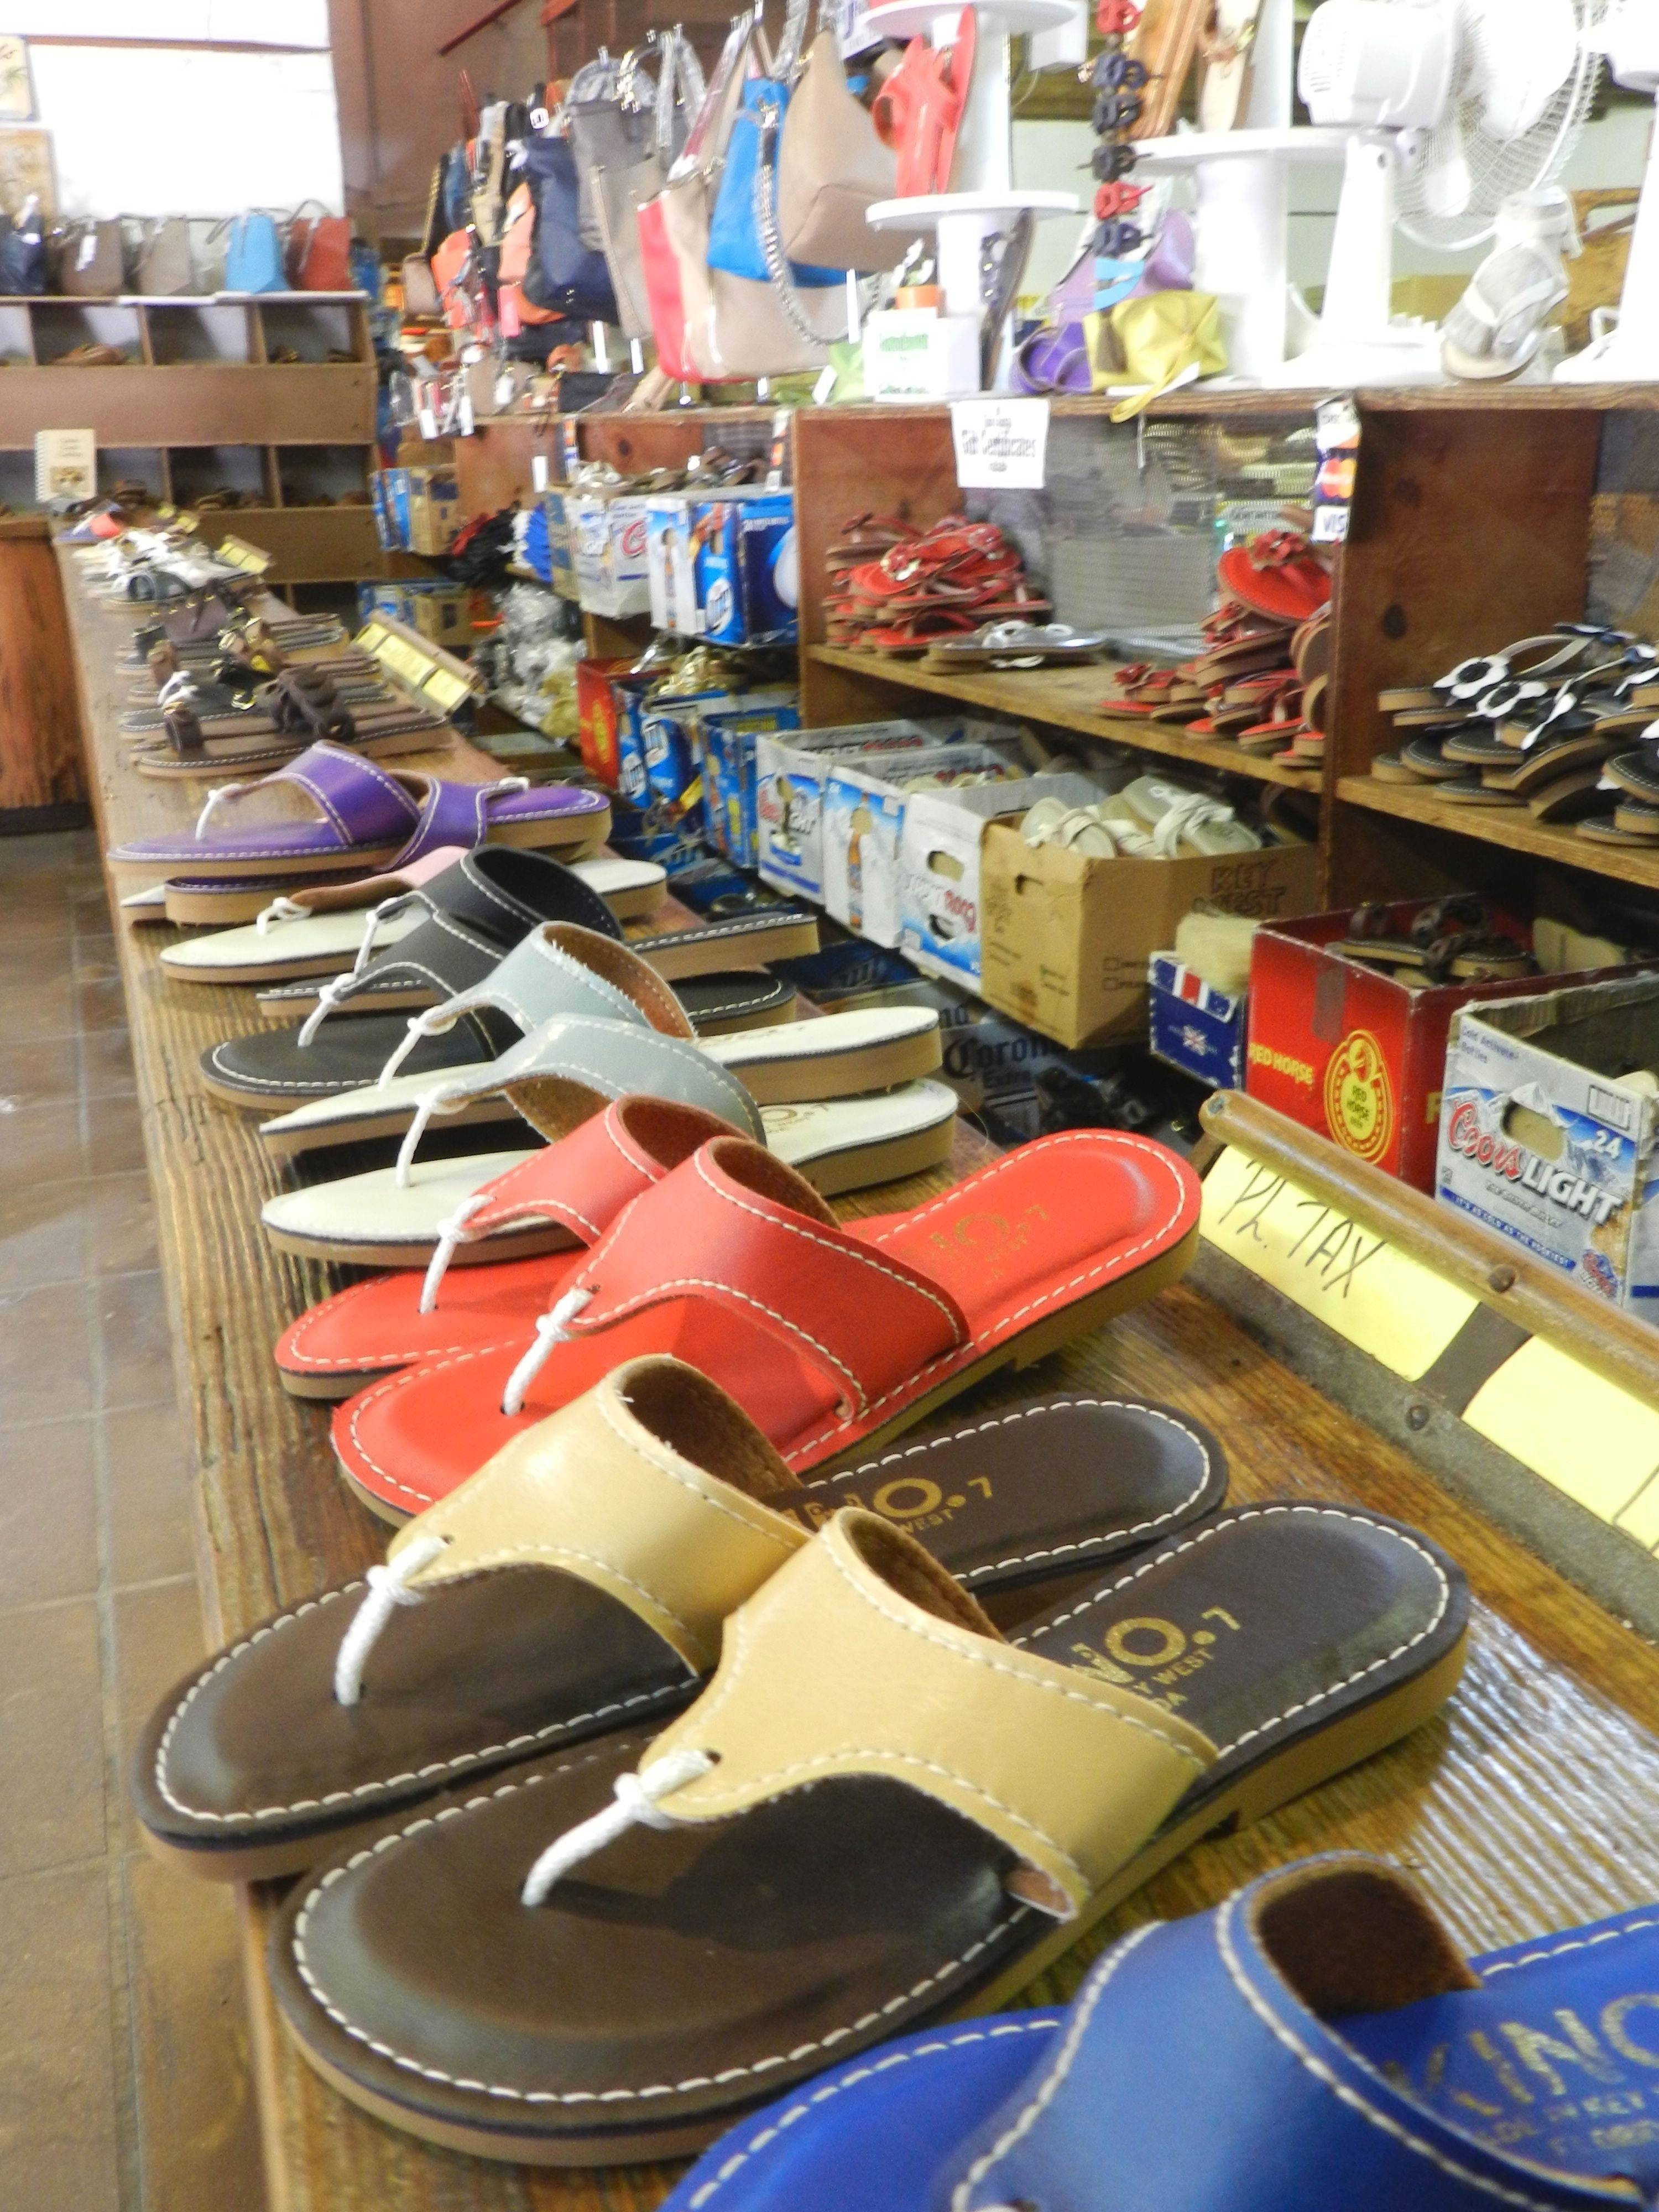 Key West's Kino Sandal Factory offers quality leather sandals and memories to take back home.